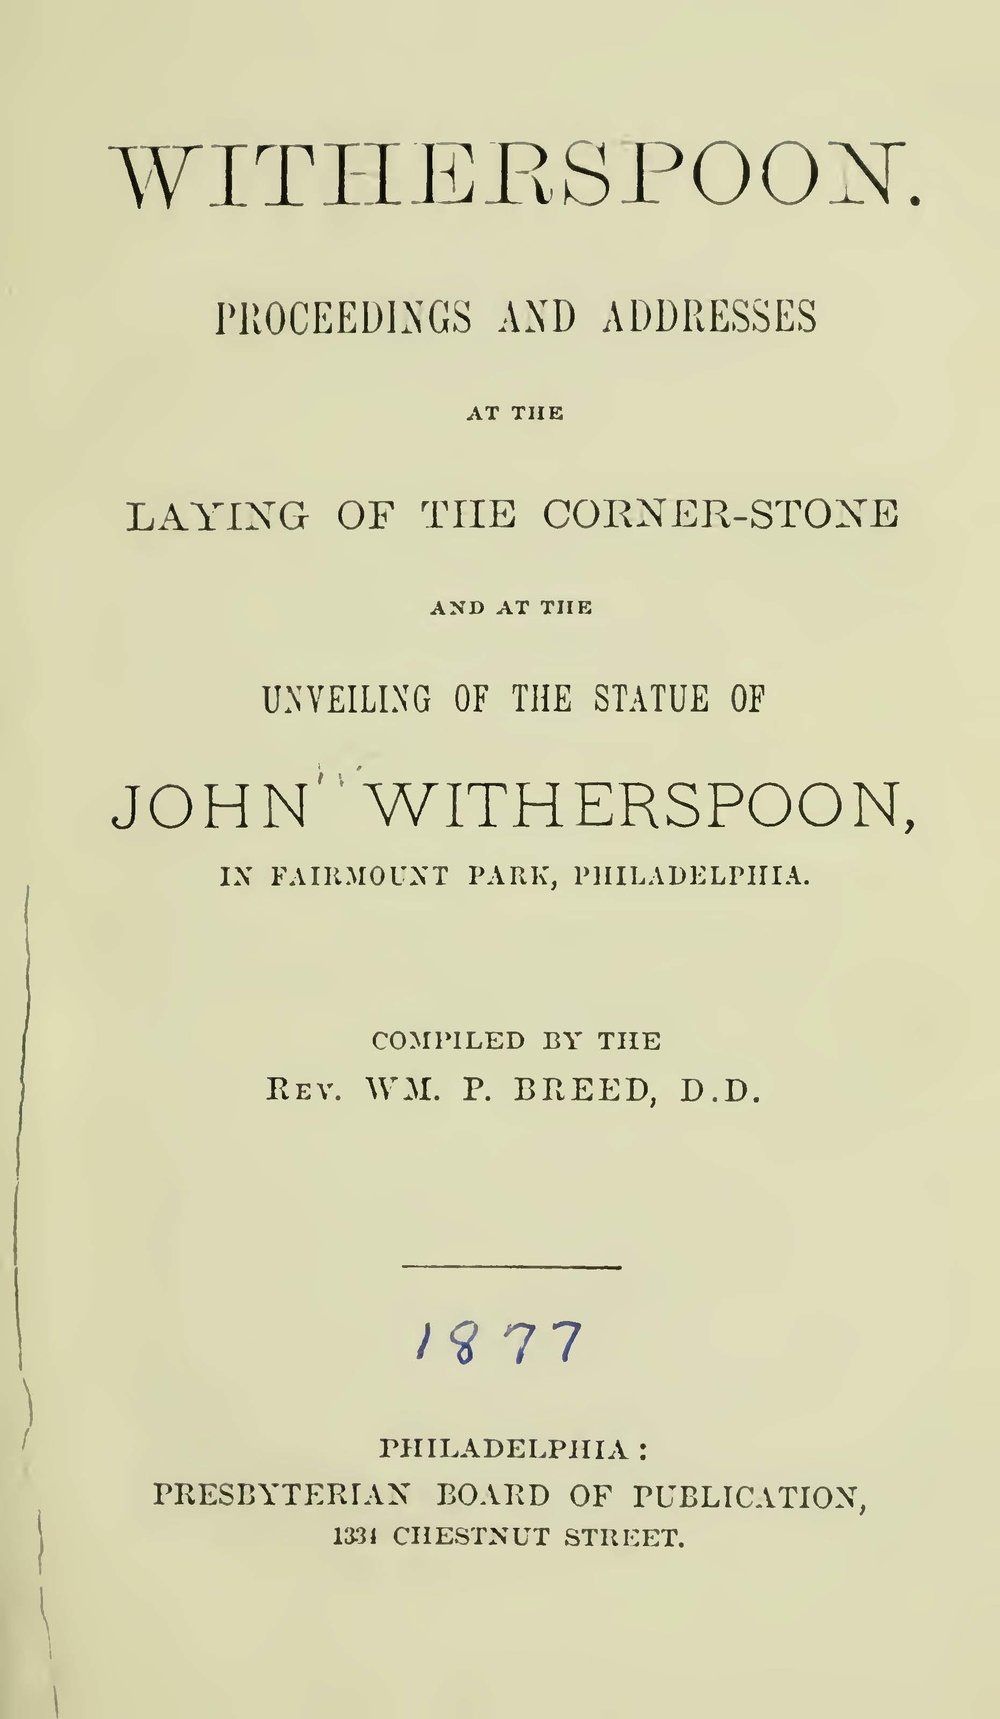 Breed, William Pratt, Witherspoon Proceedings and Addresses at the Laying of the Corner Stone and at the Unveiling of the Statue Title Page.jpg